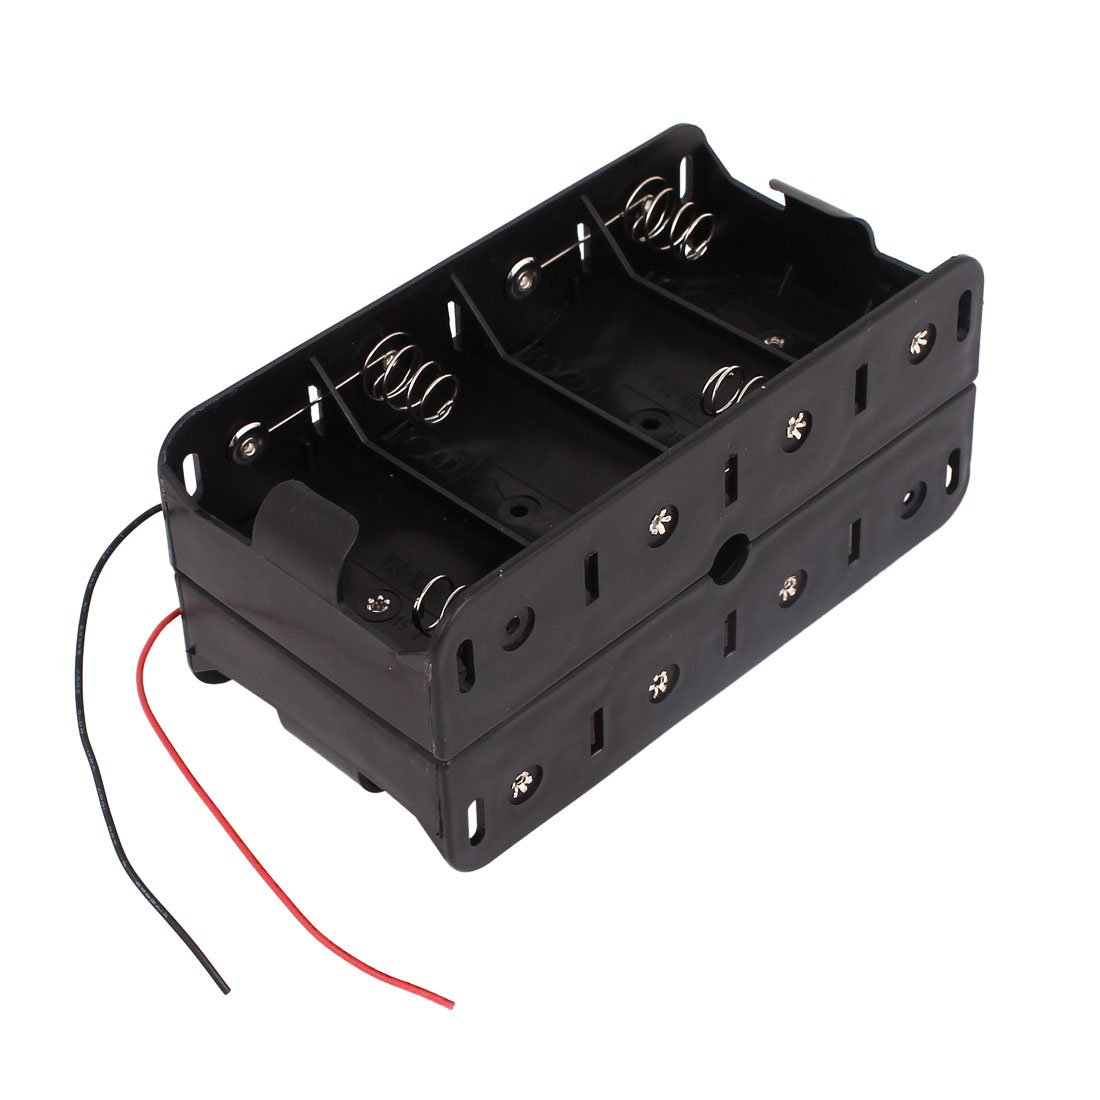 hight resolution of get quotations 1 5v d size battery box toogoo r dual wires double sides storage case